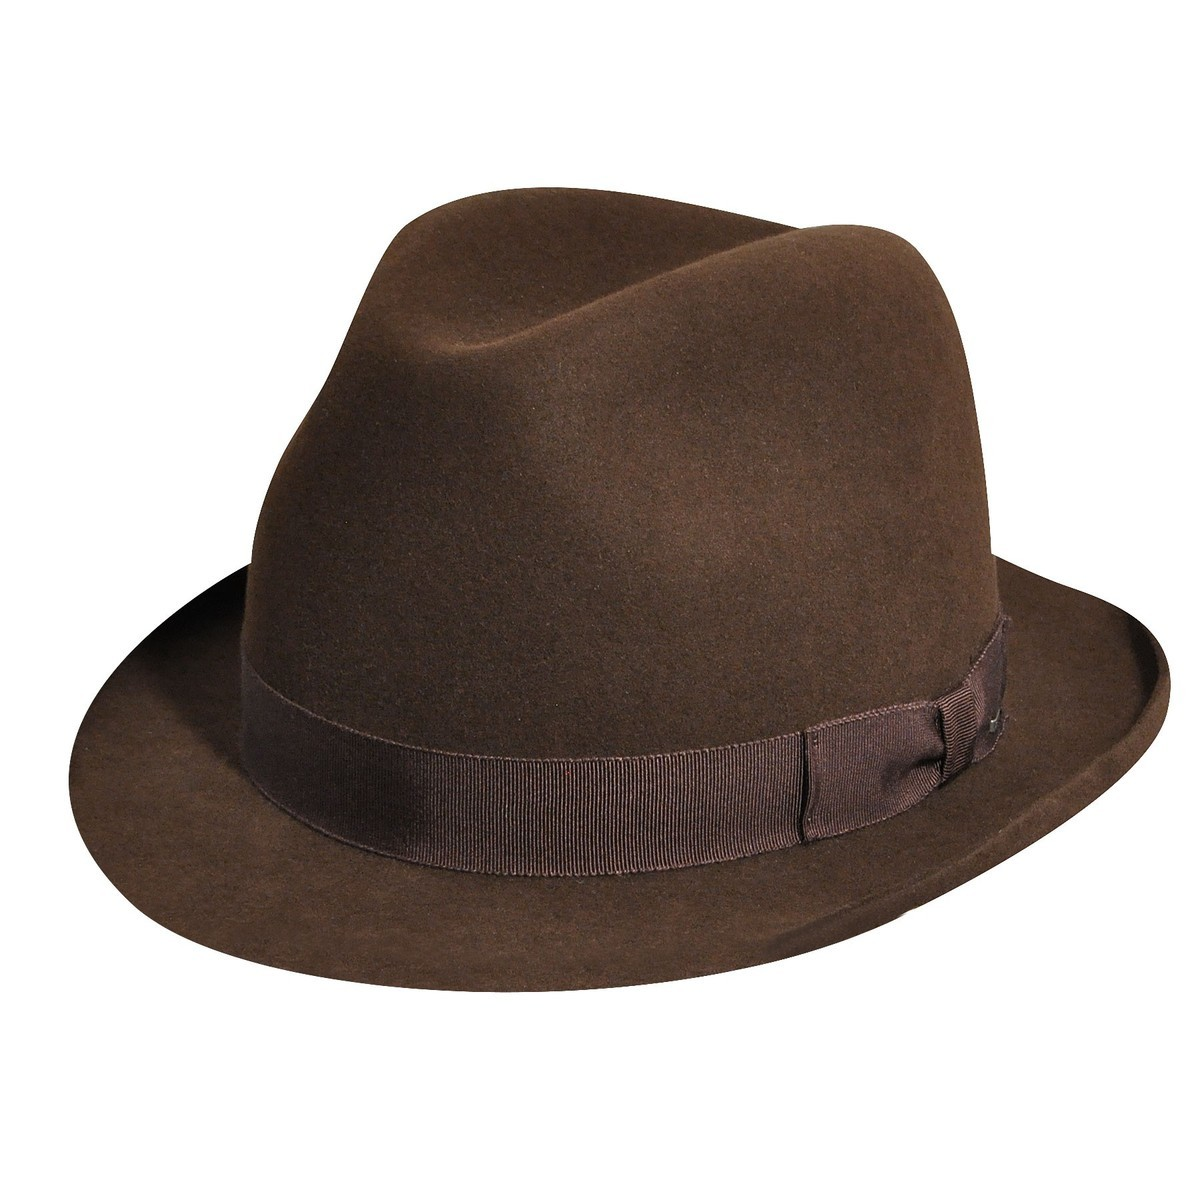 Bailey of Hollywood Edsel Fedora Chocolate フェドラハット 帽子 Chocolate